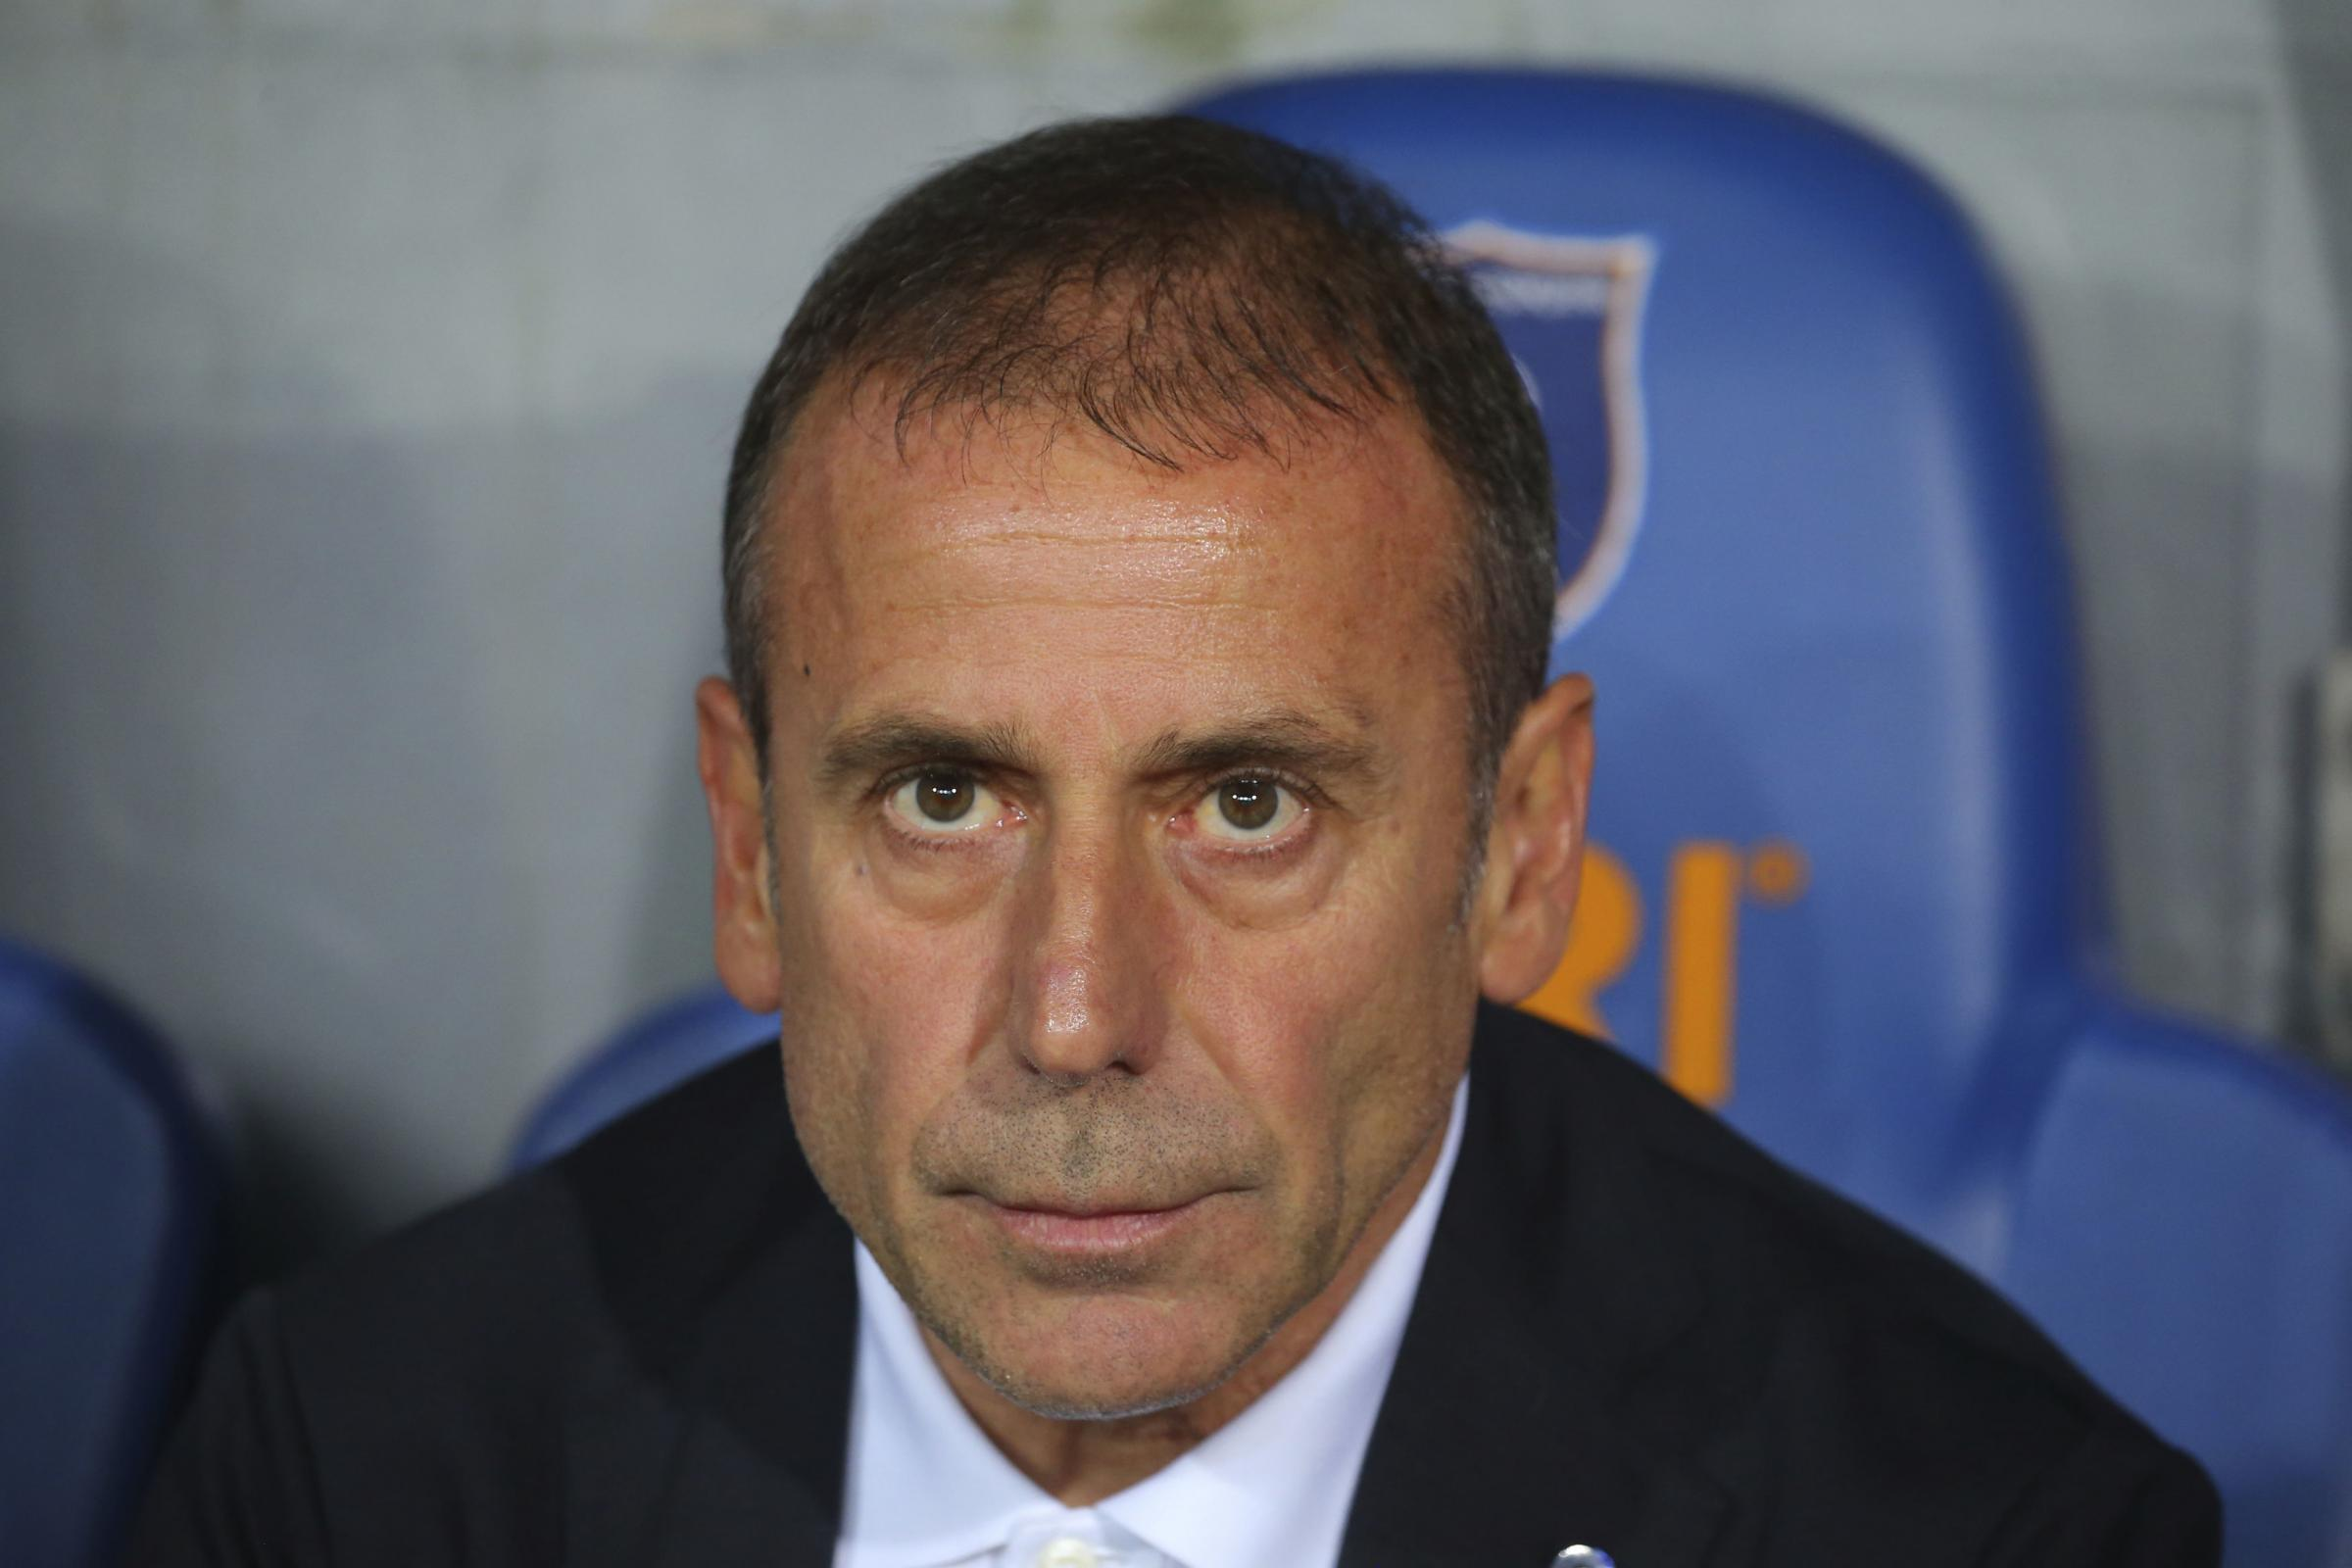 Istanbul Basaksehir's hed coach Abdullah Avci sits on the bench prior to a Europa League qualification soccer match between Istanbul Basaksehir and Burnley, at the Fatih Terim stadium in Istanbul, Thursday, Aug. 9, 2018. (AP Photo).